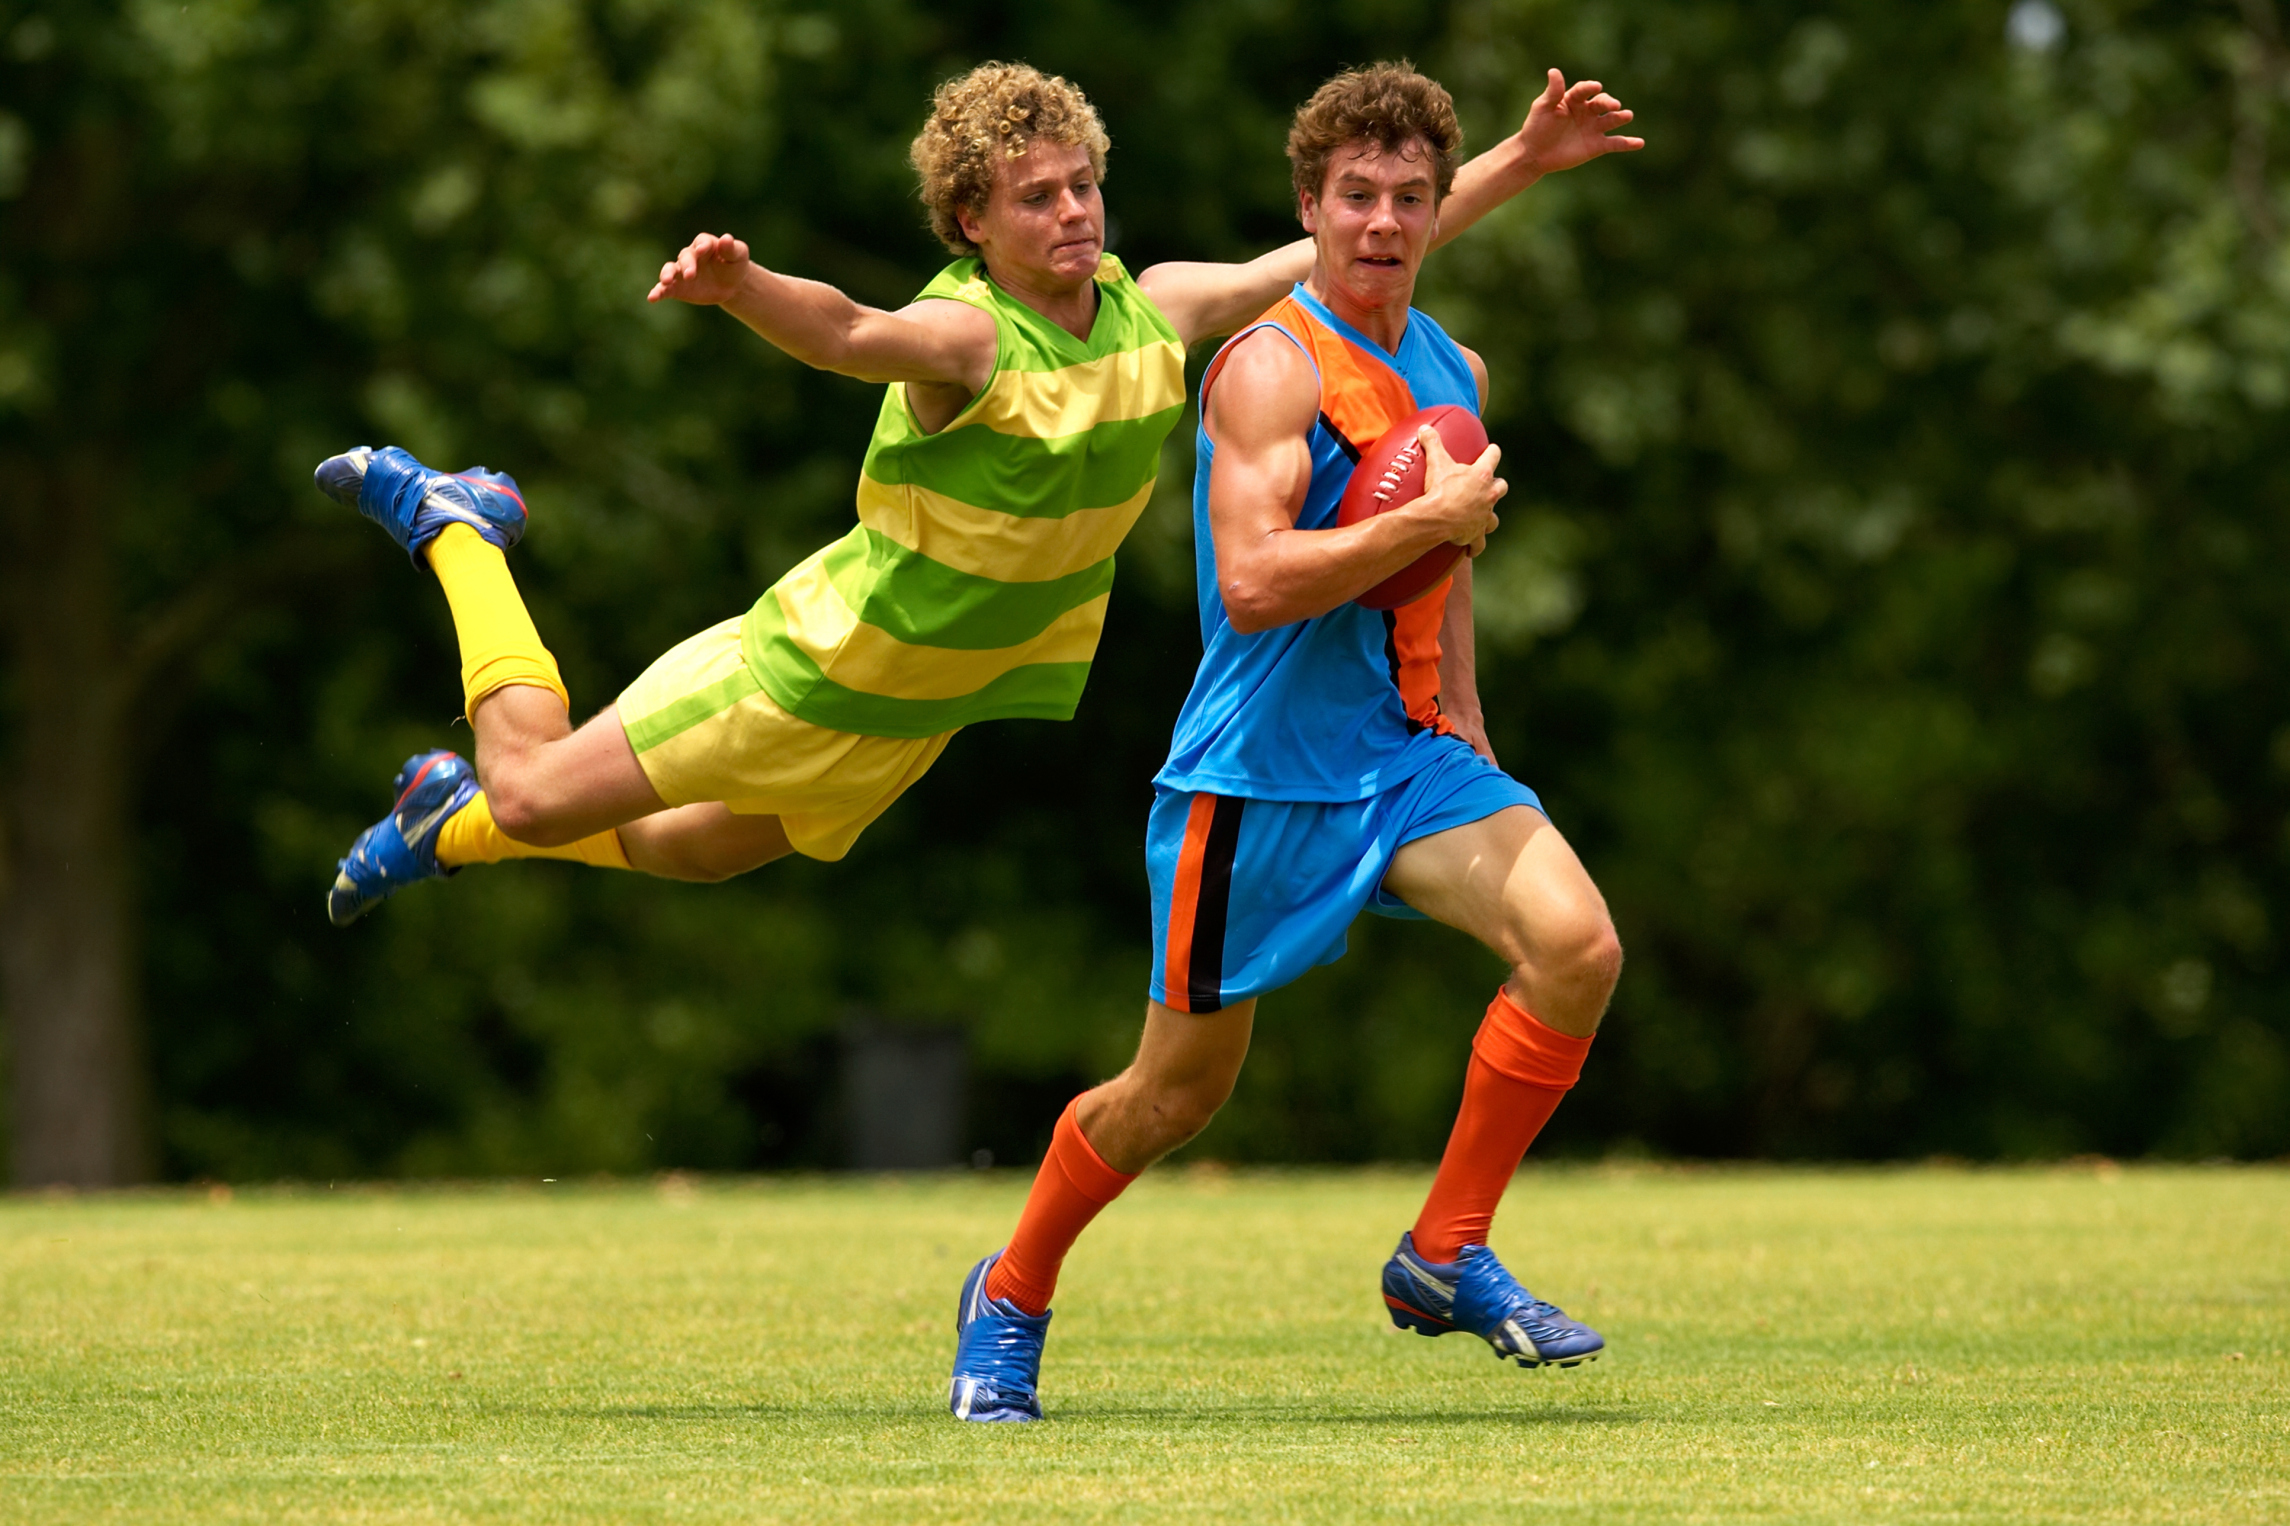 The Importance Of Physical Fitness As A Teenager